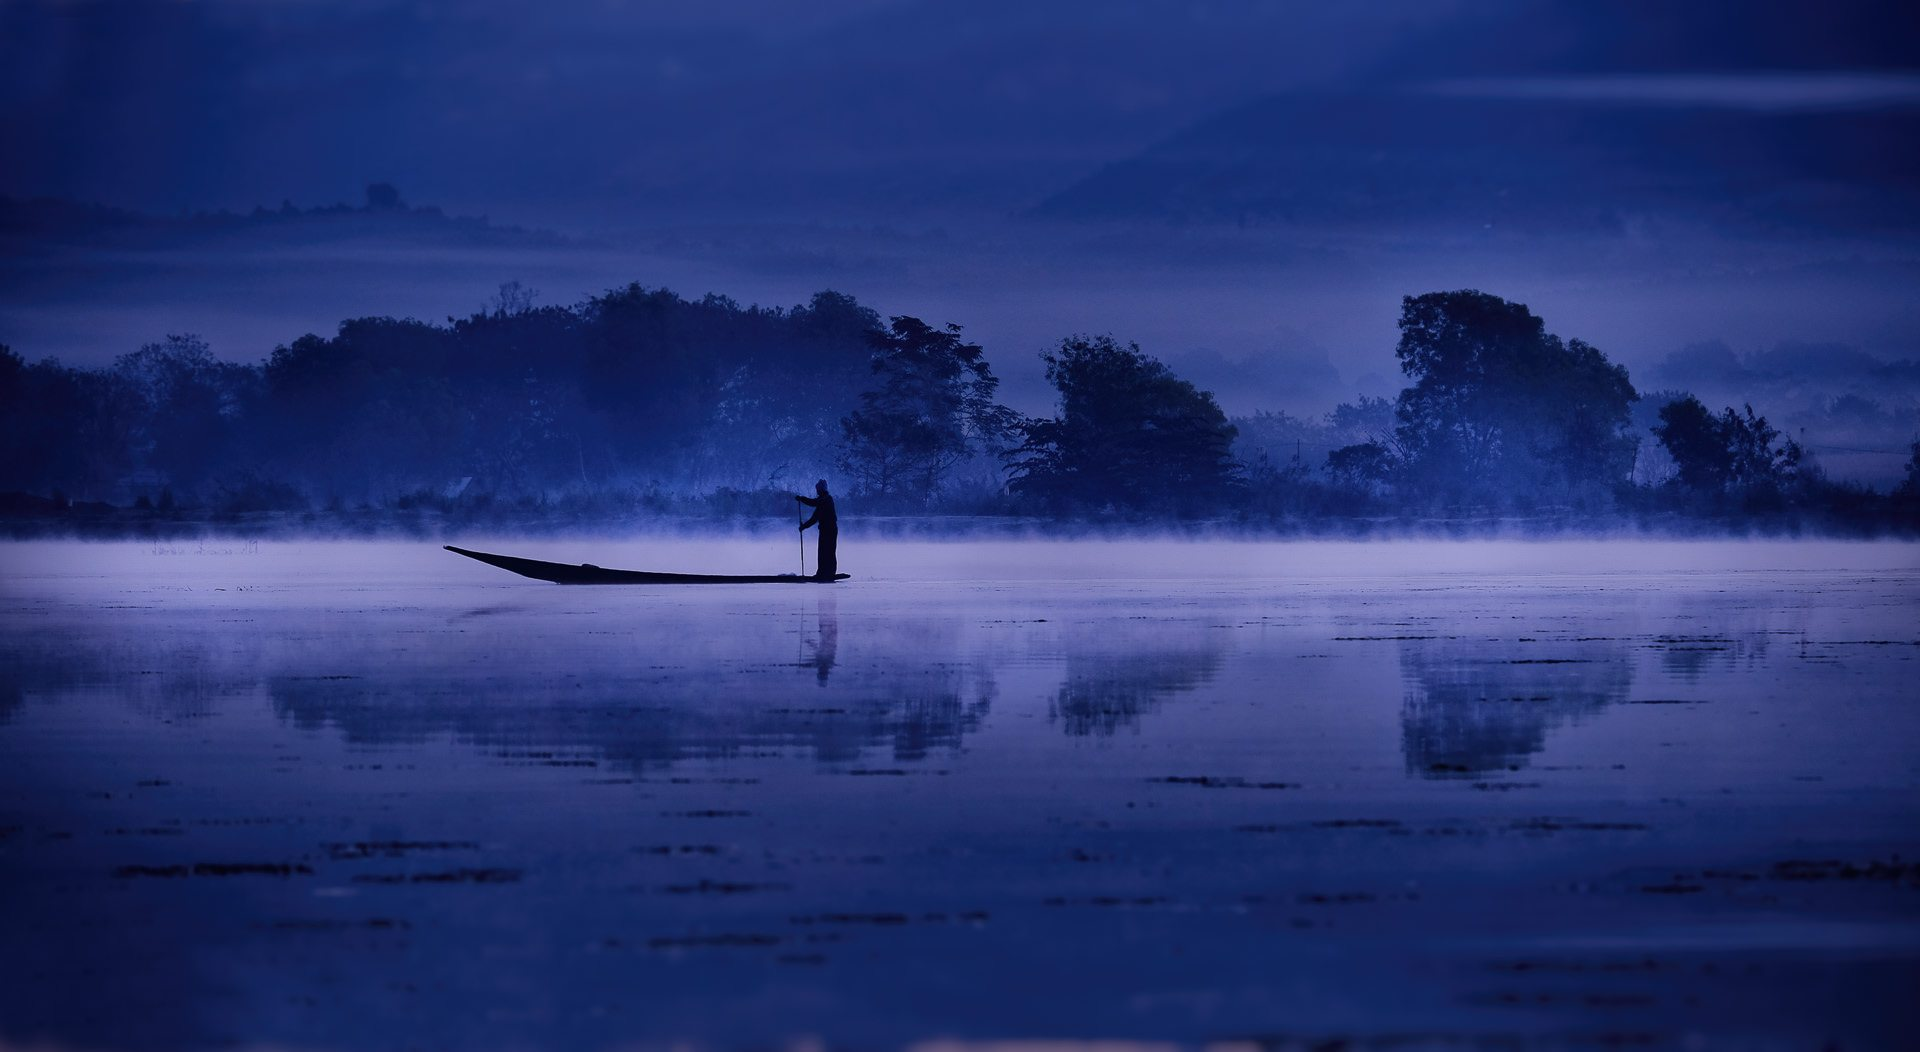 mist rises at dawn as a fisherman paddles across Inle lake, Myanmar © Hamish Scott-Brown